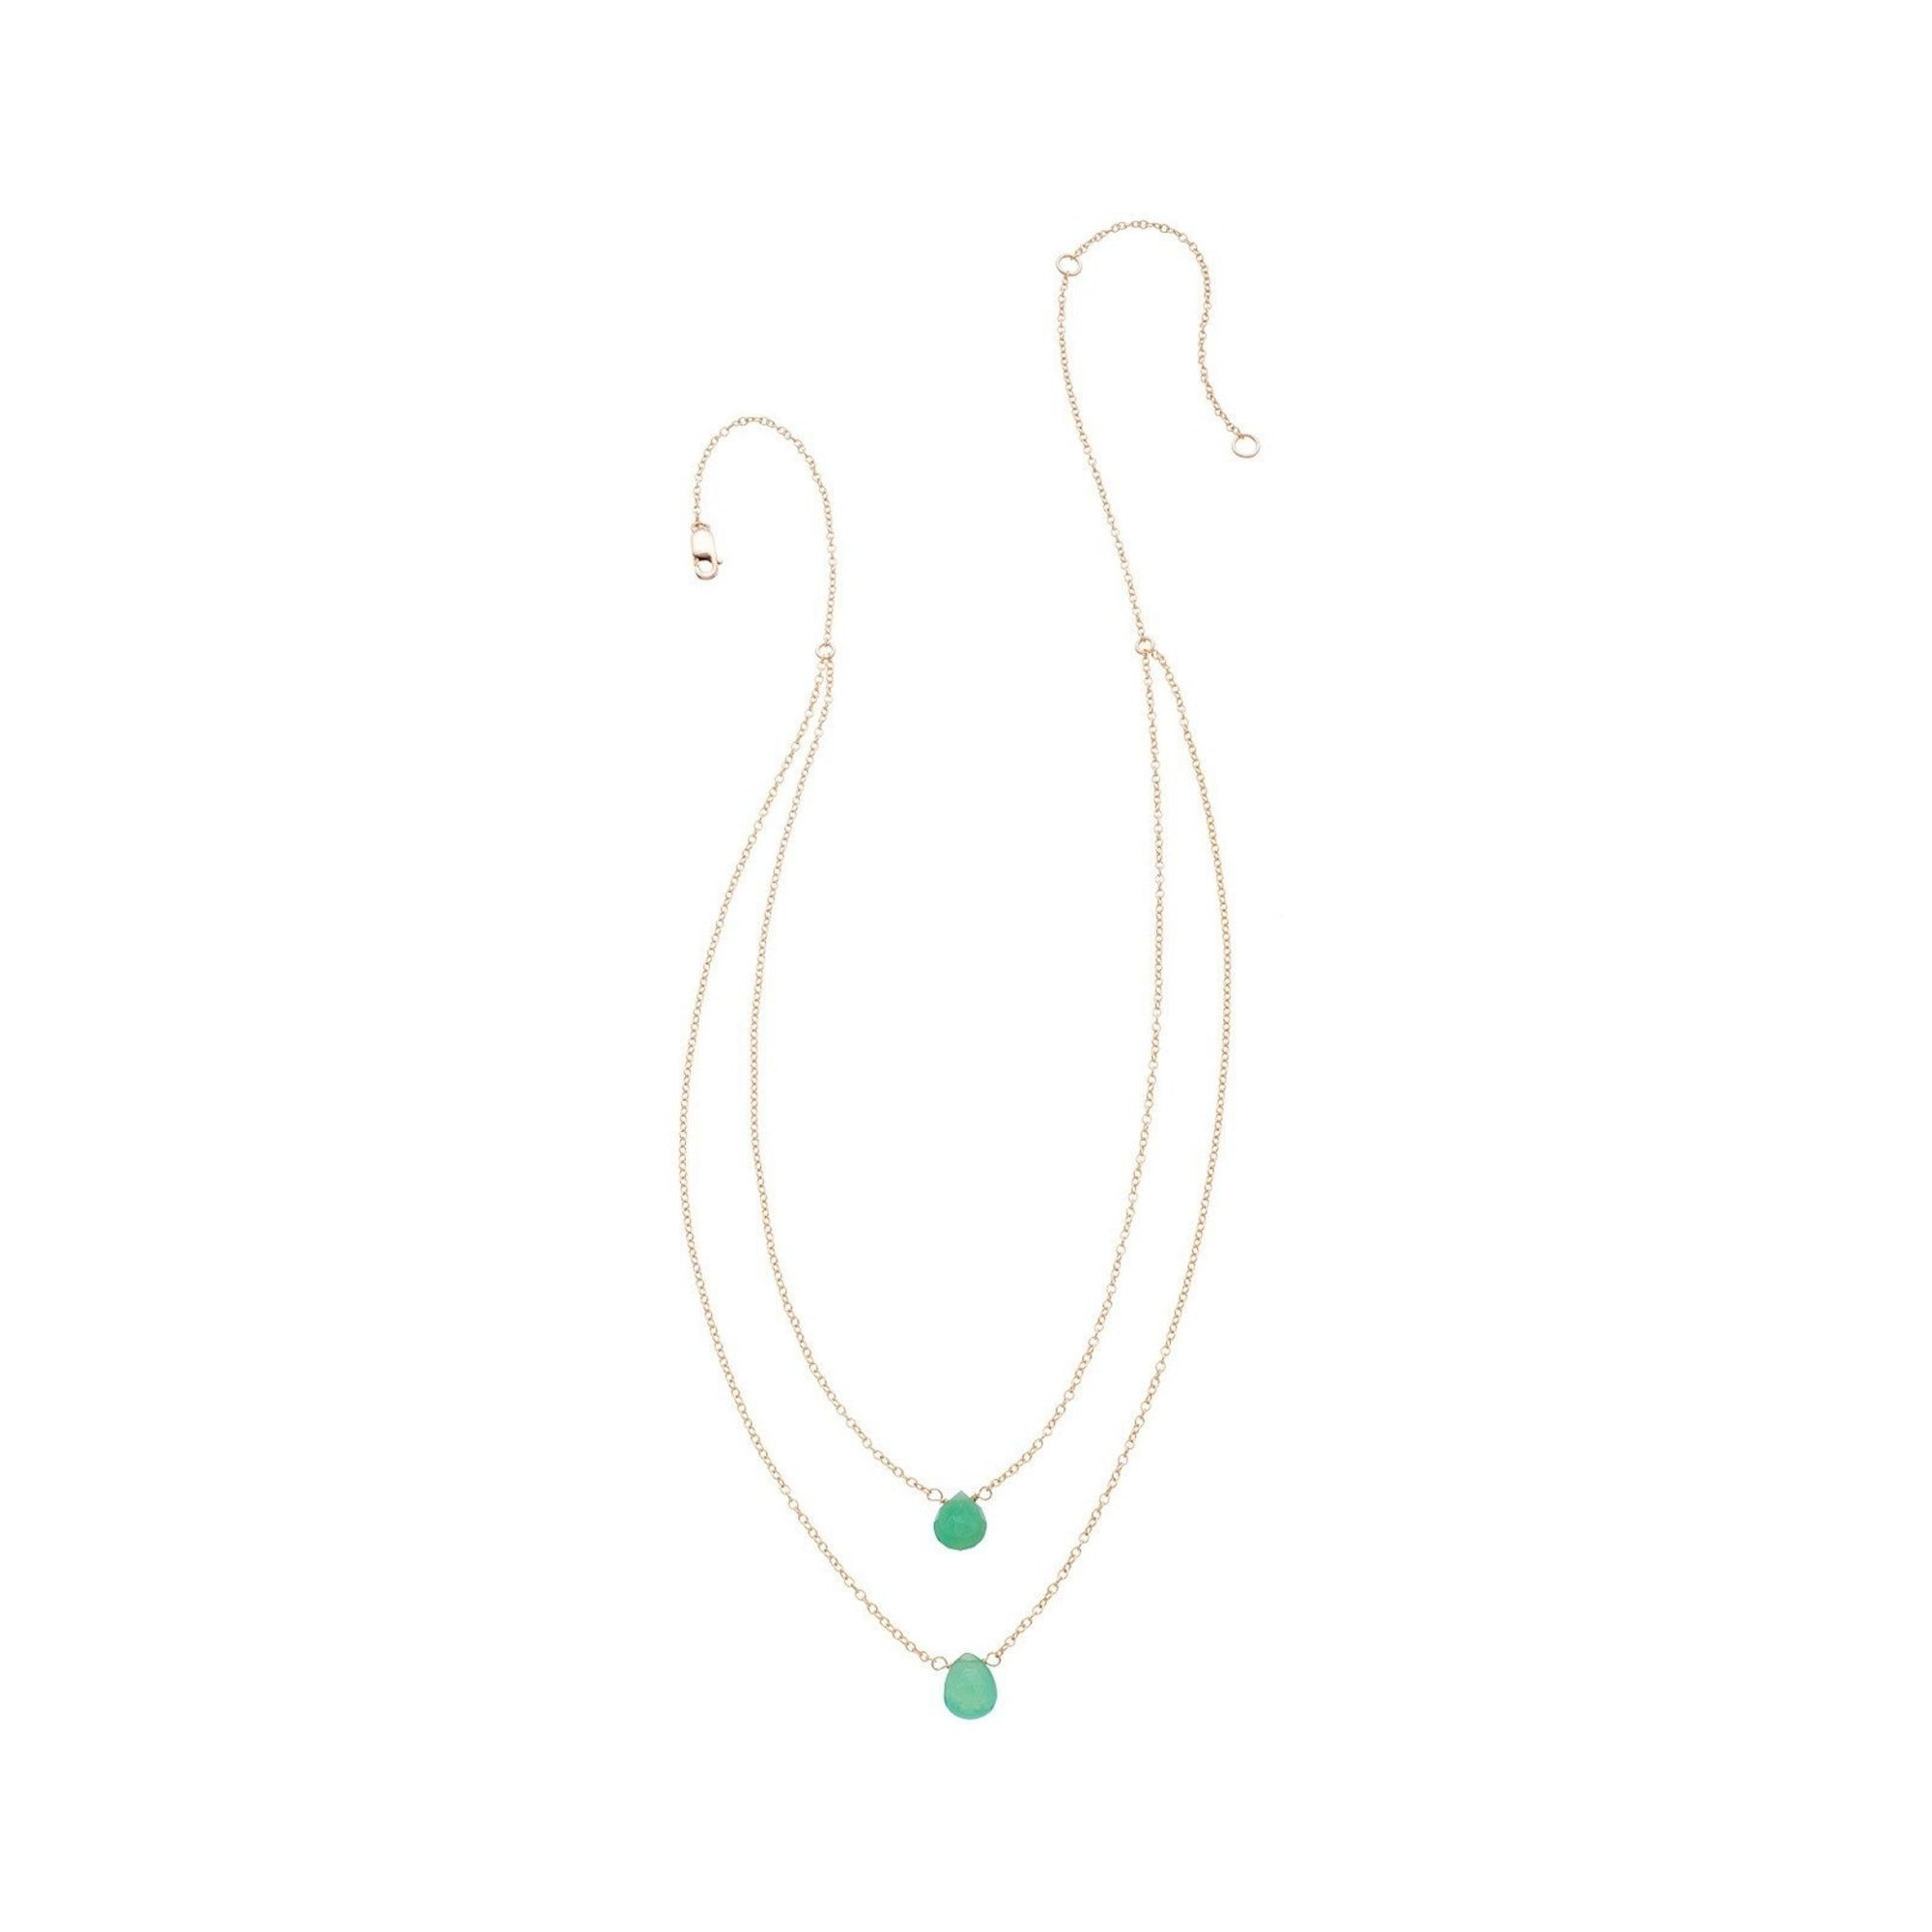 2 Tiny Chrysoprase Gemstones Drape Necklace